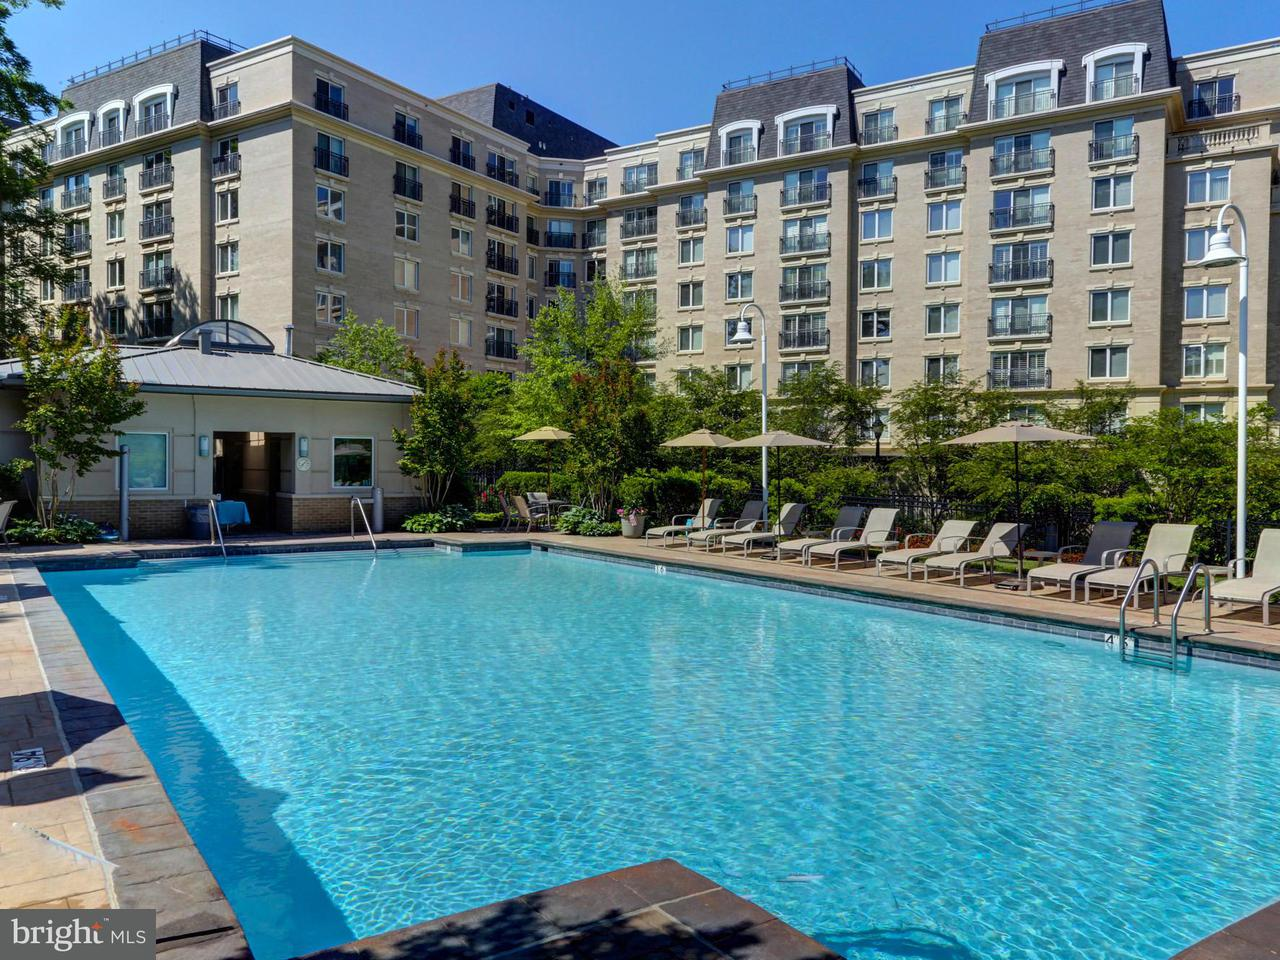 Additional photo for property listing at 5 Park Pl #414 5 Park Pl #414 Annapolis, Maryland 21401 United States